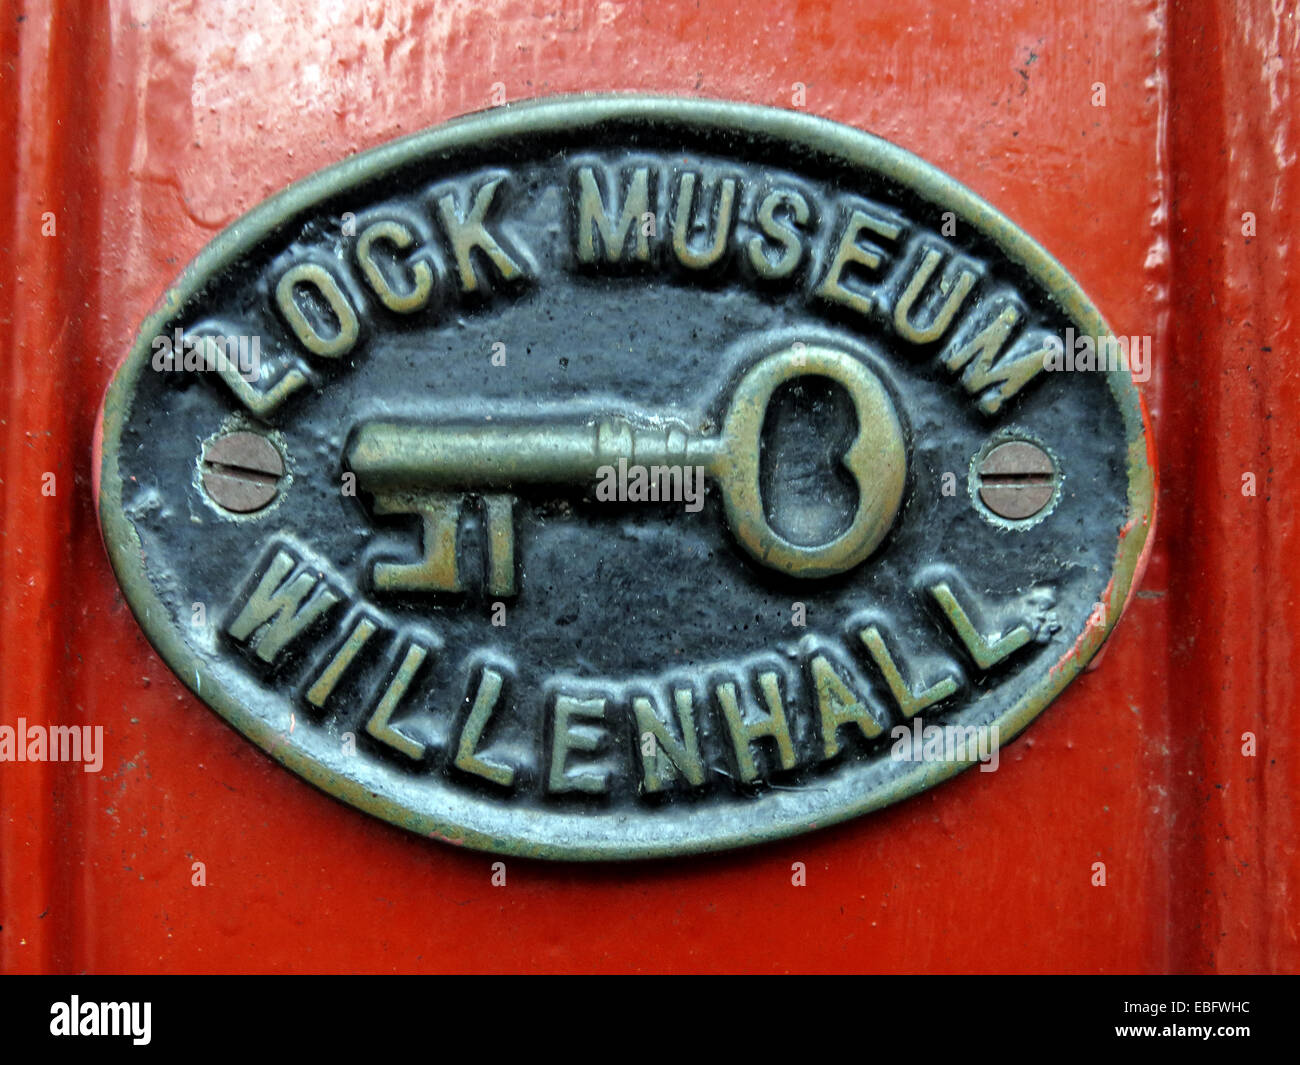 Sign from Willenhall Lock Museum, Walsall West Midlands, England, United Kingdom Stock Photo